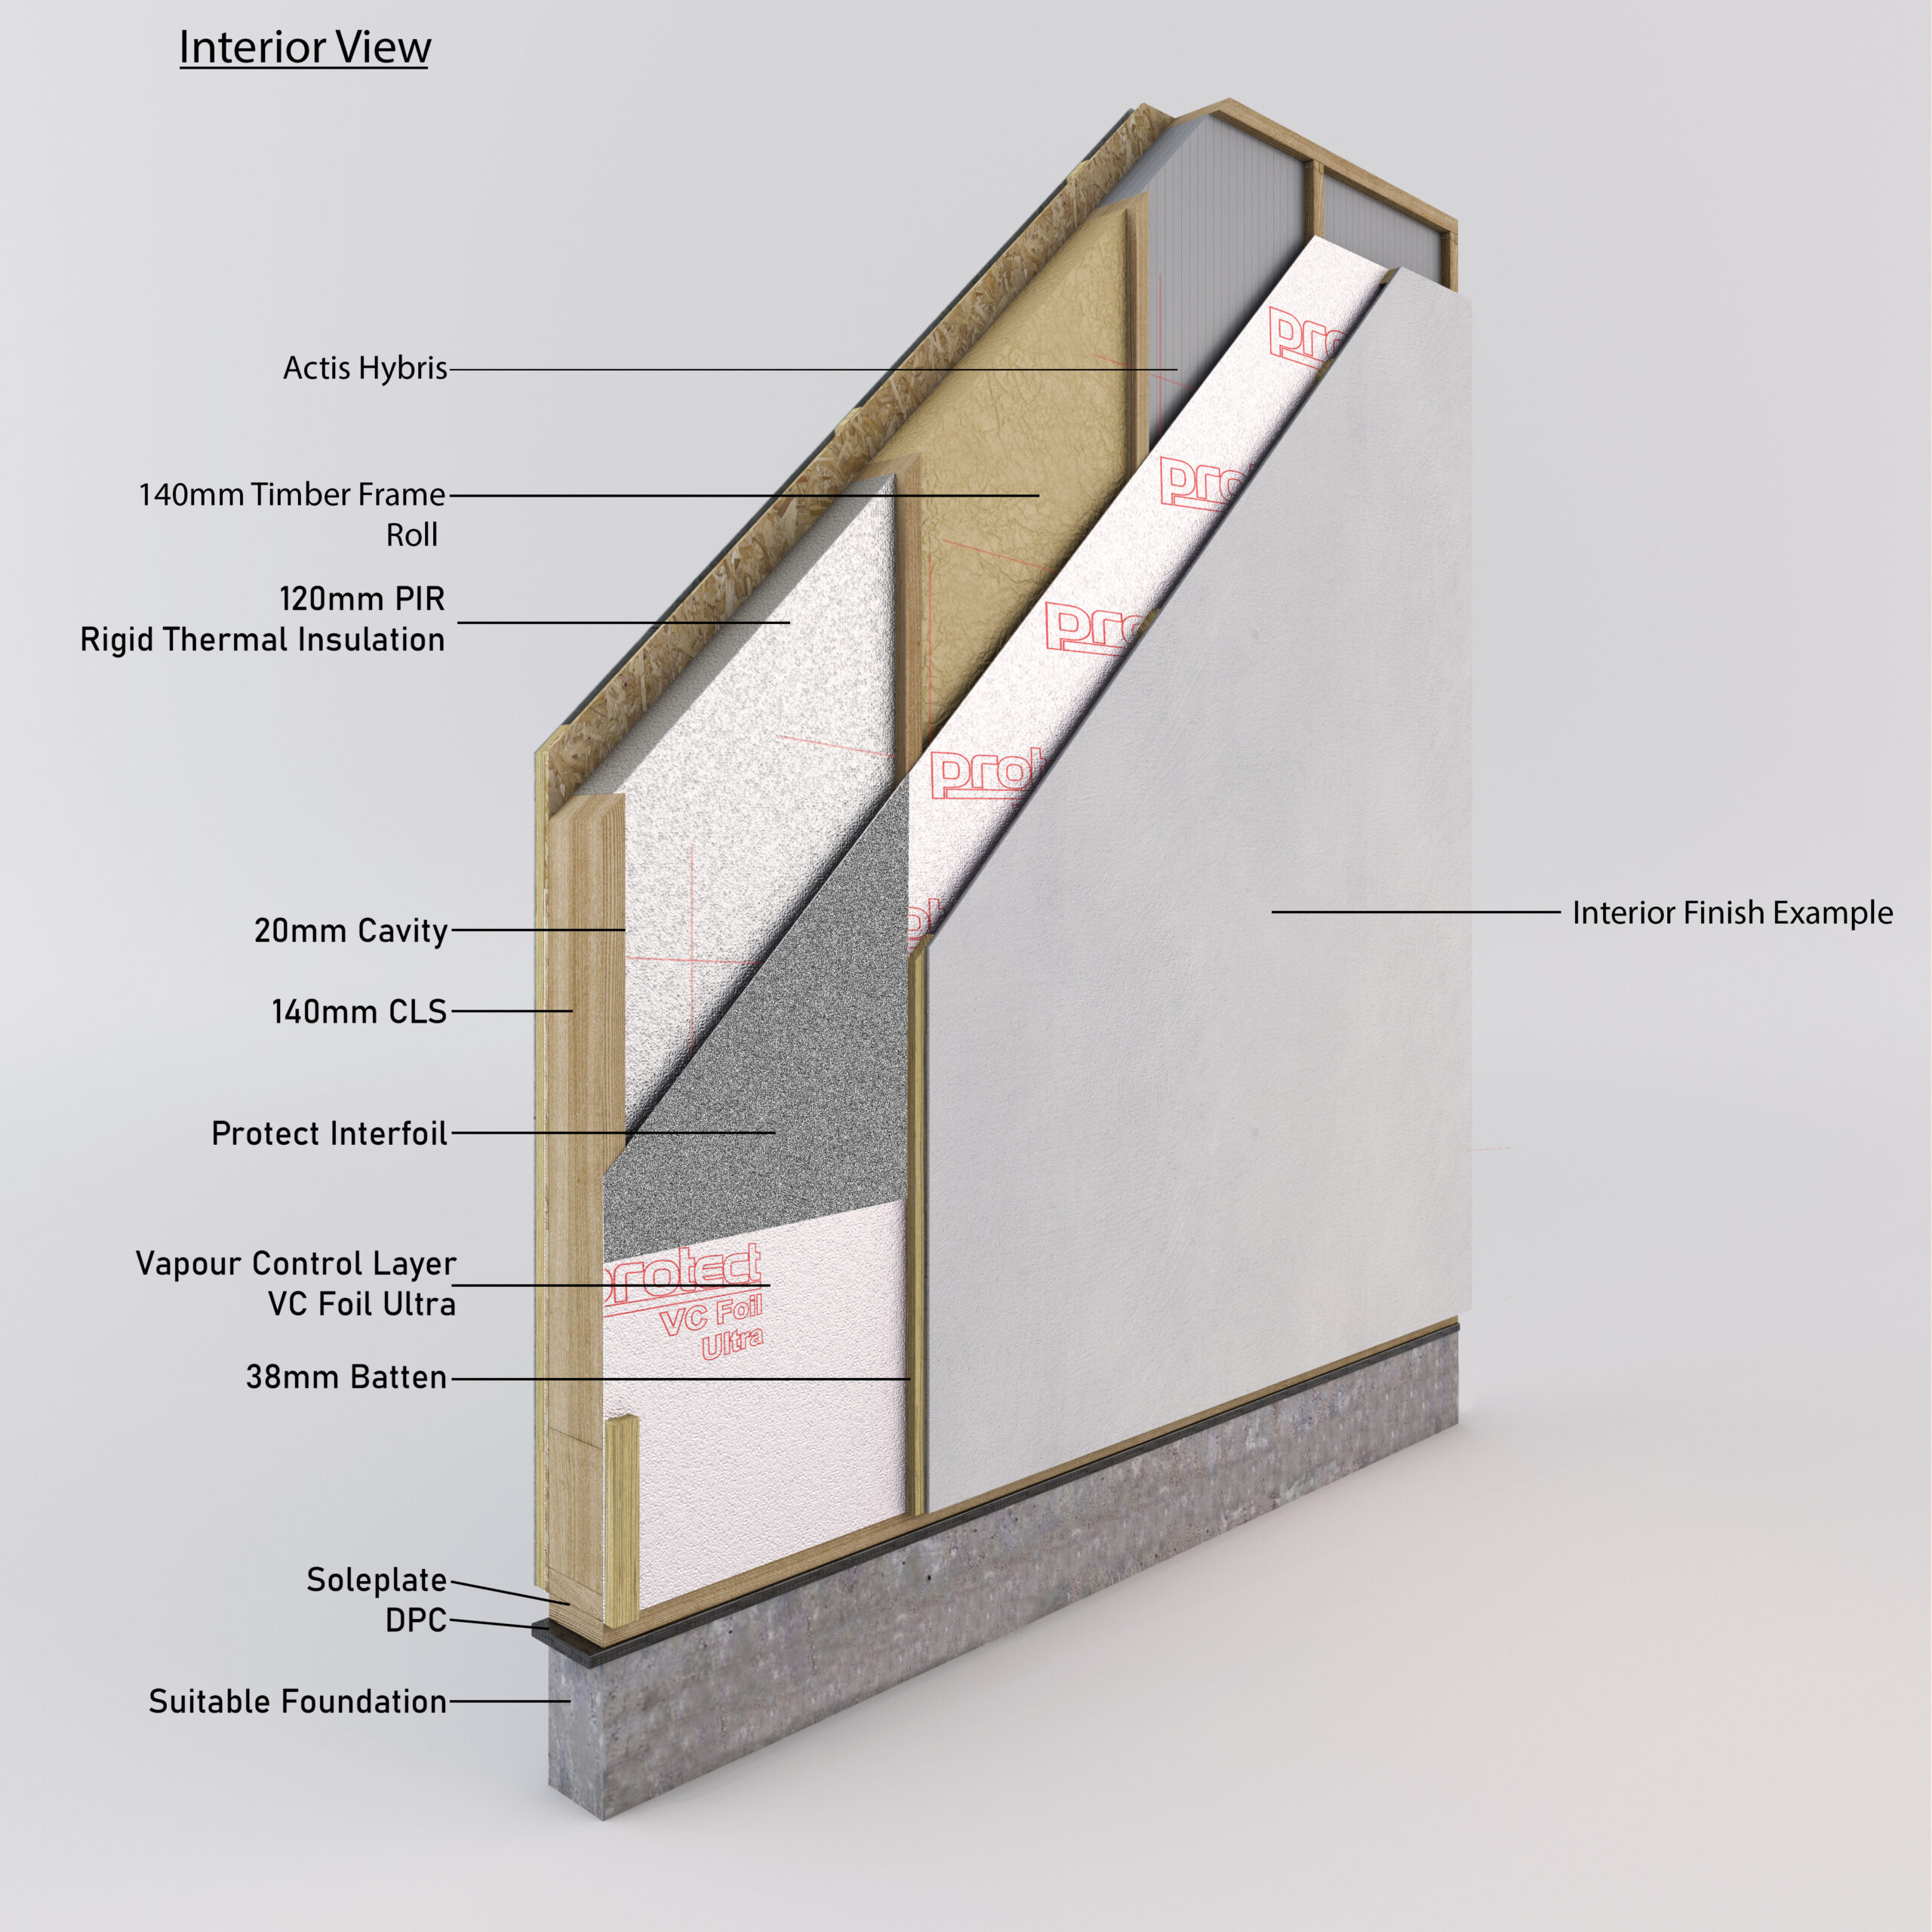 Interior panel designs and layers of each material used